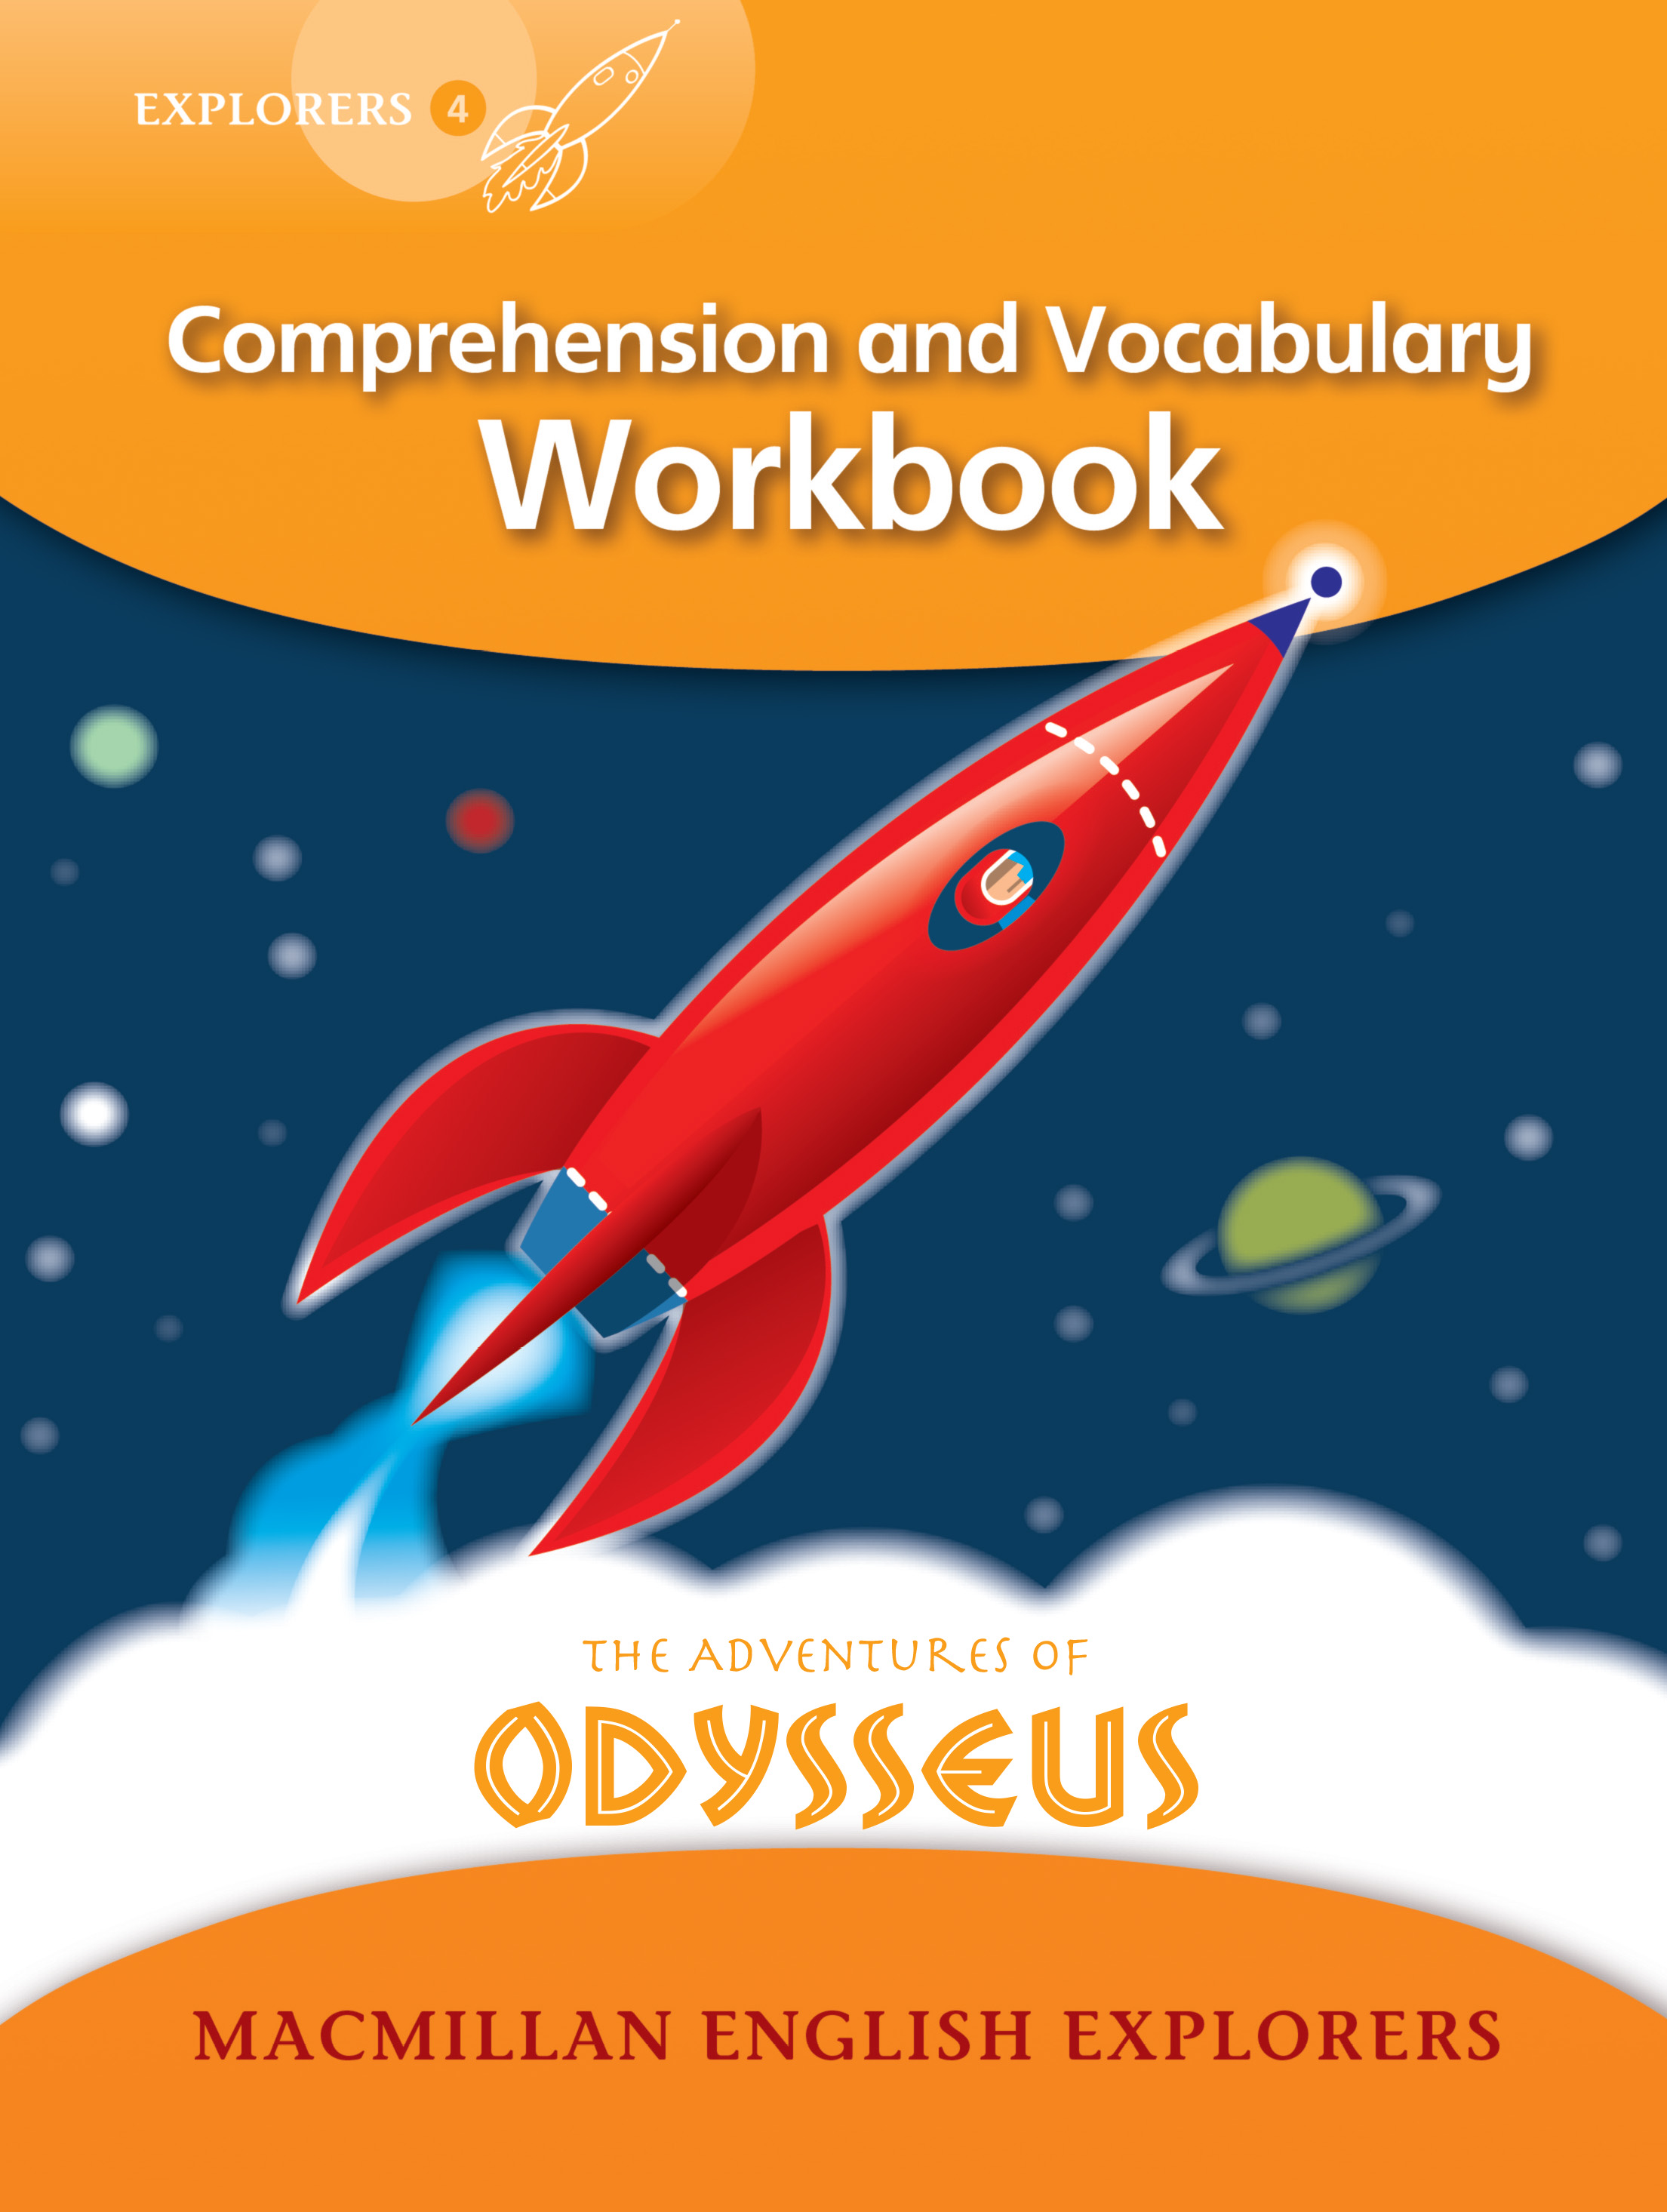 Explorers 4: The Adventures of Odysseus Workbook